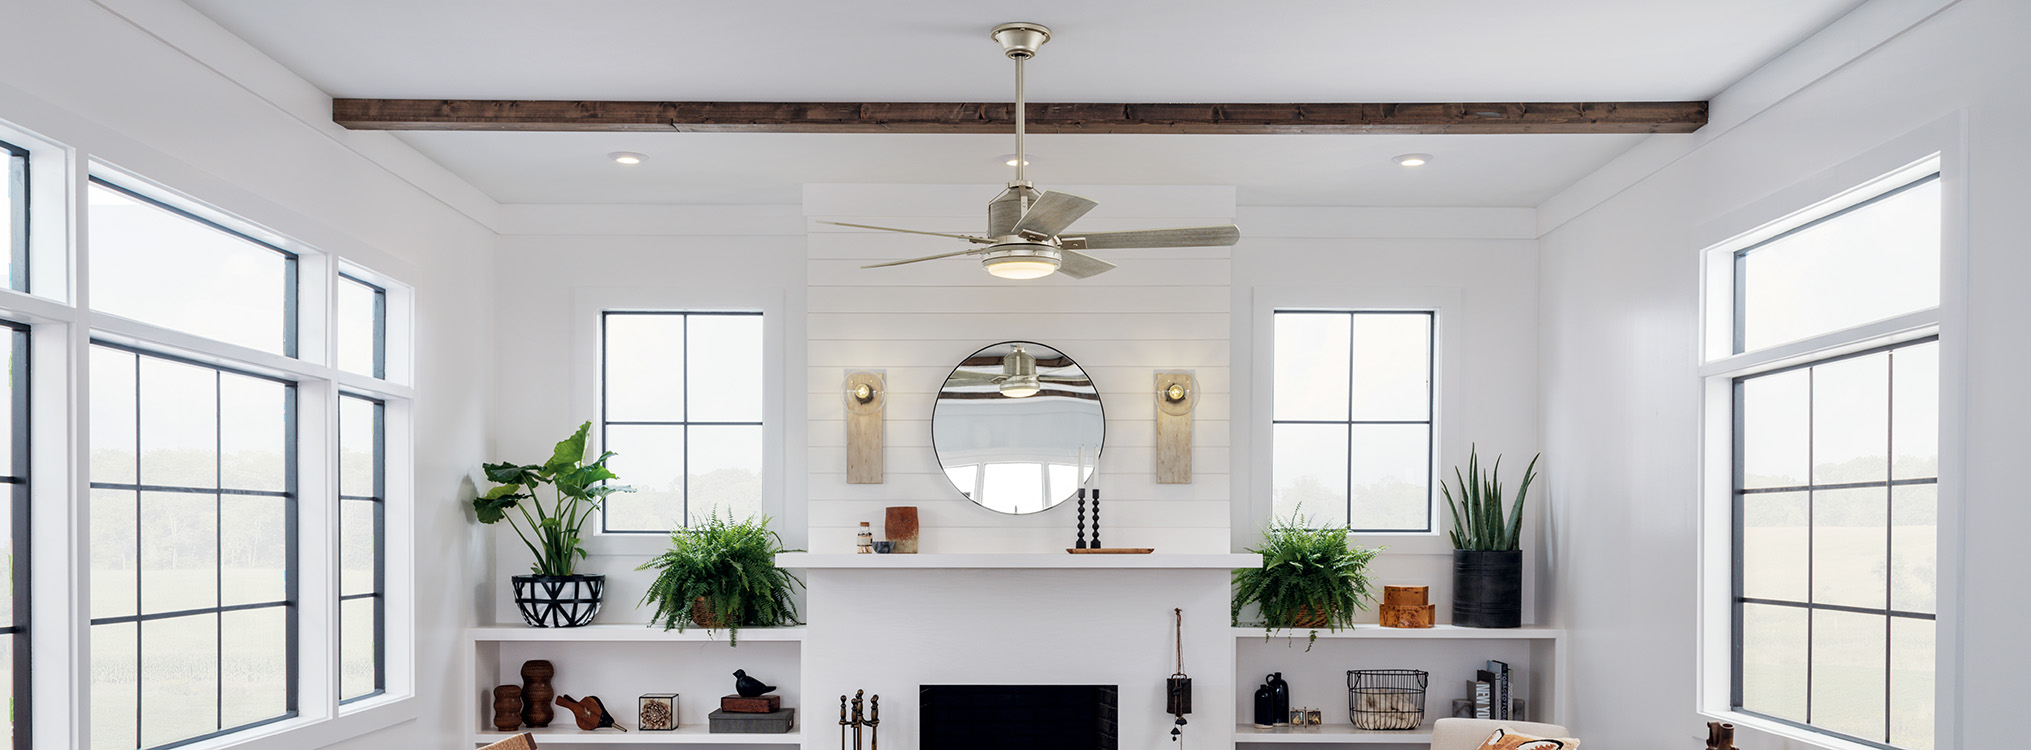 Ceiling Fan in a bright white room